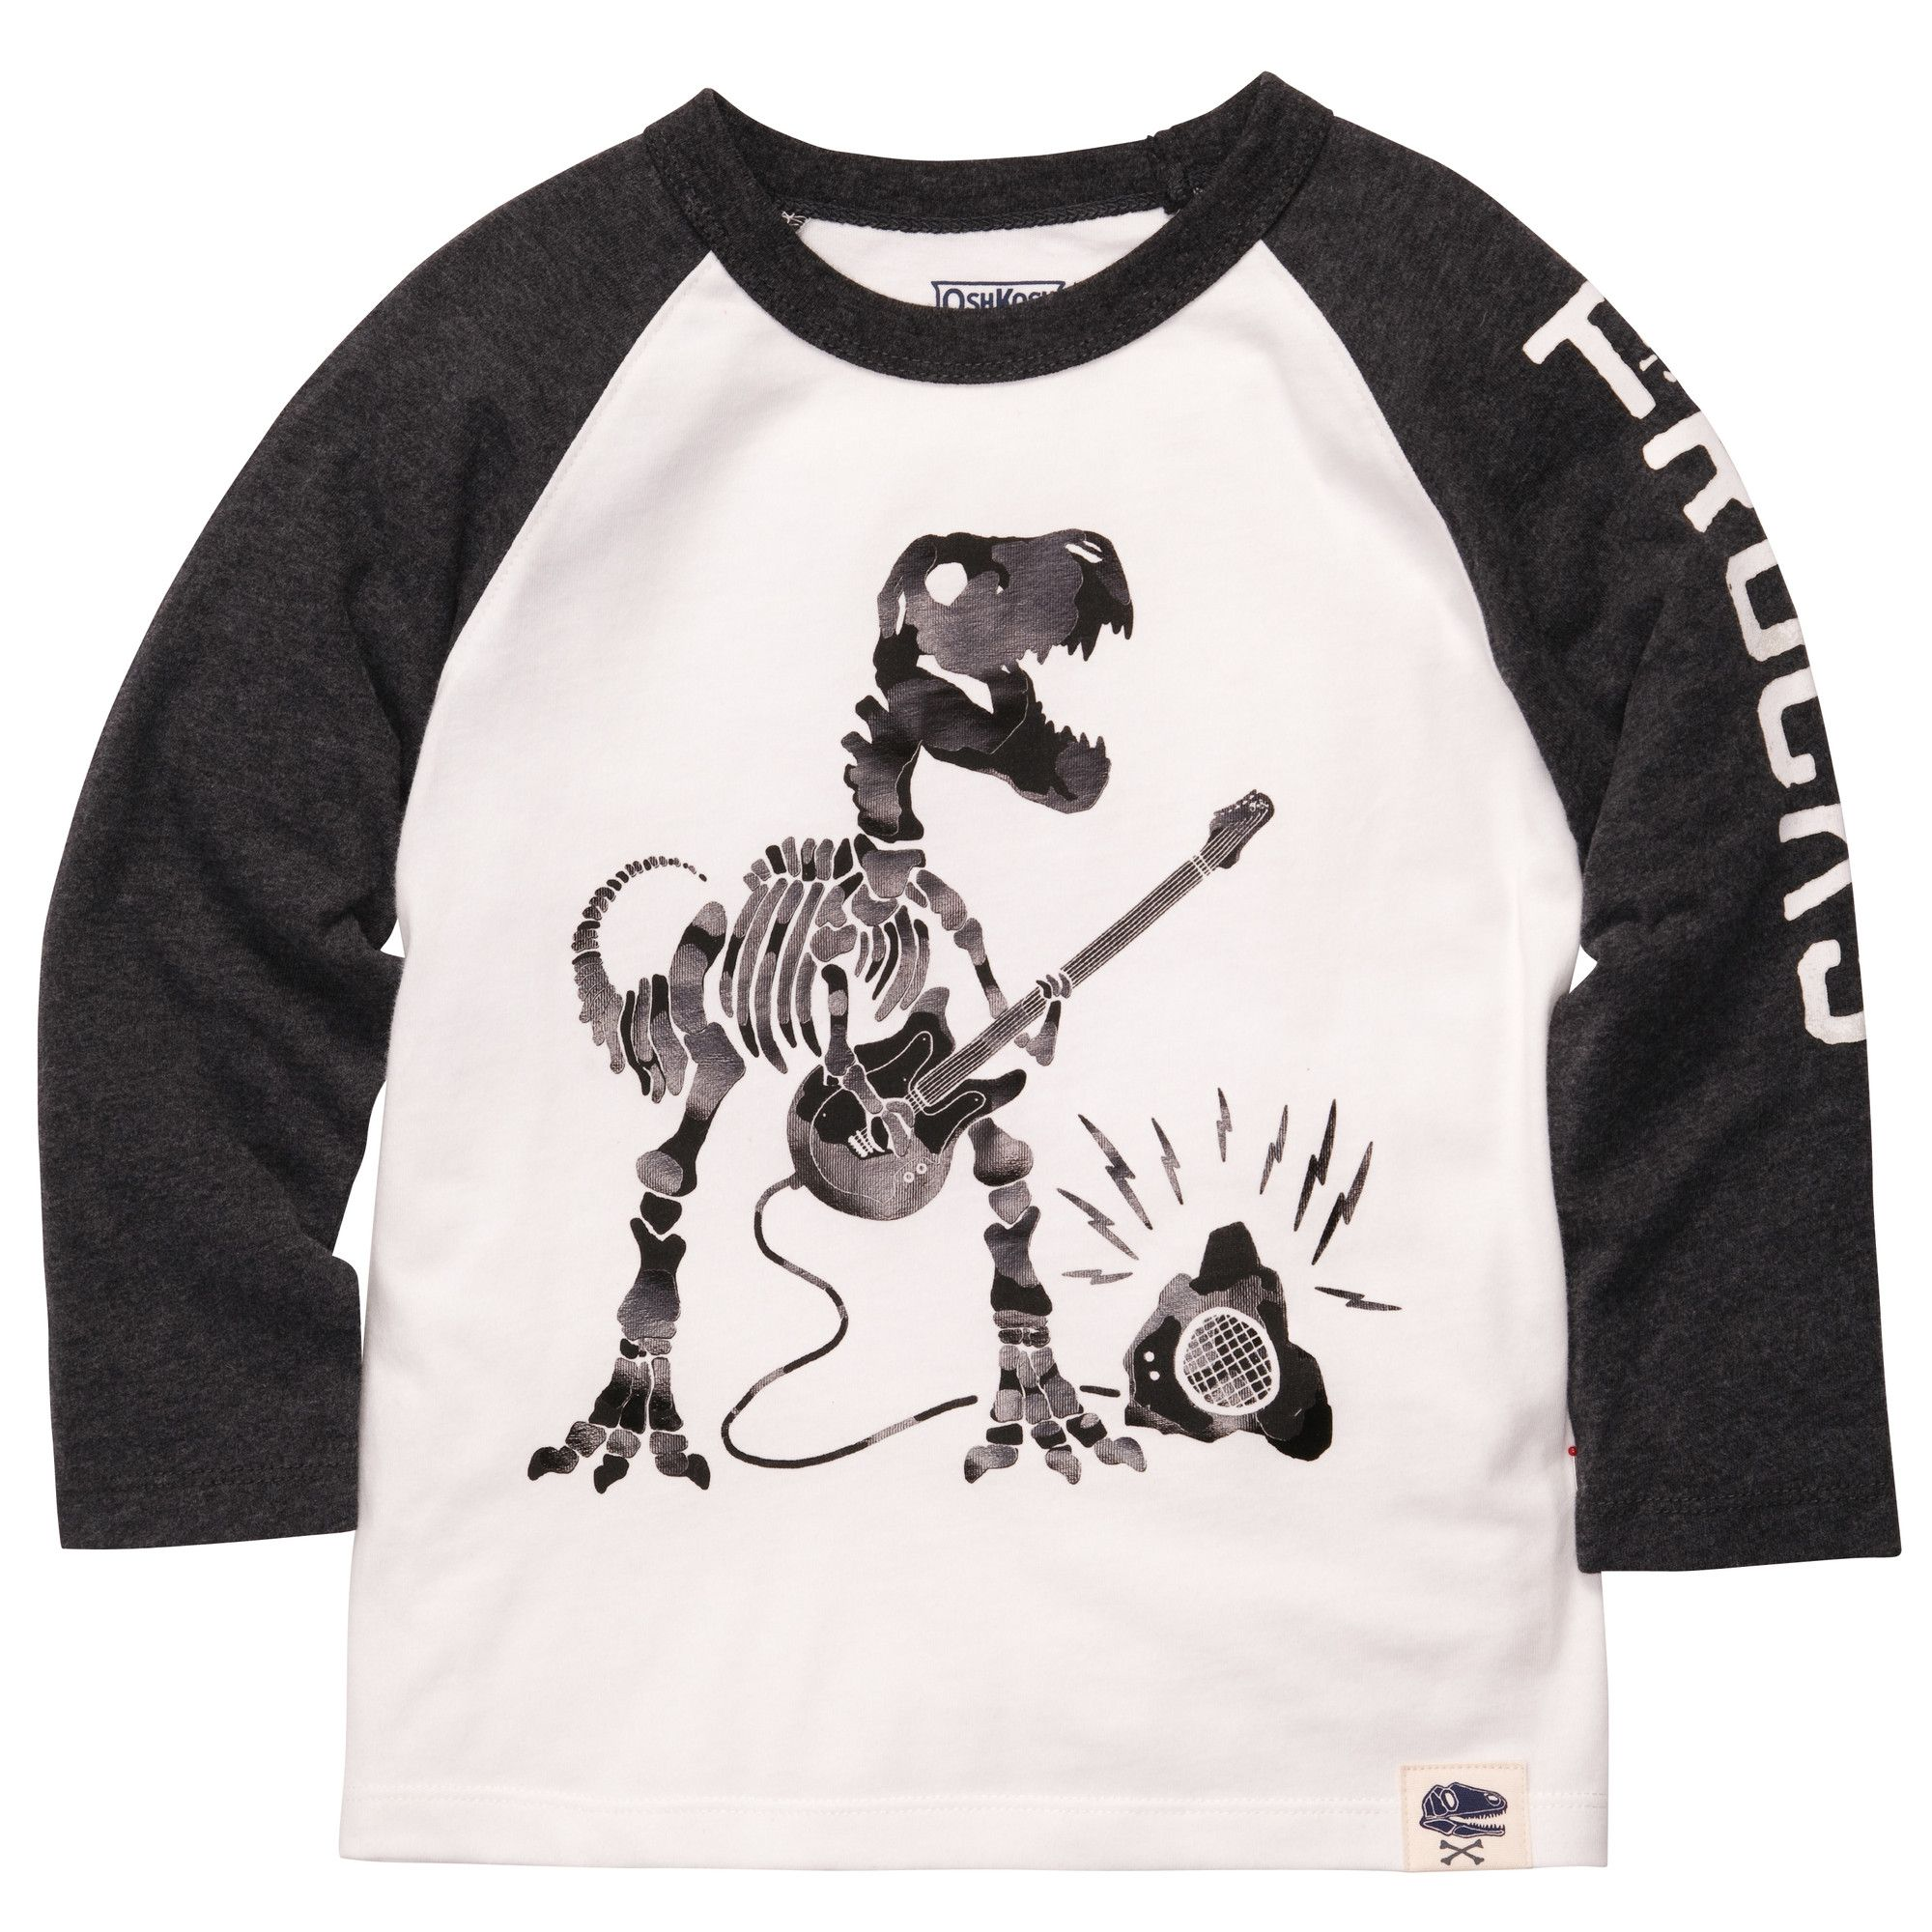 Funny t shirts for kids Long sleeve Dino